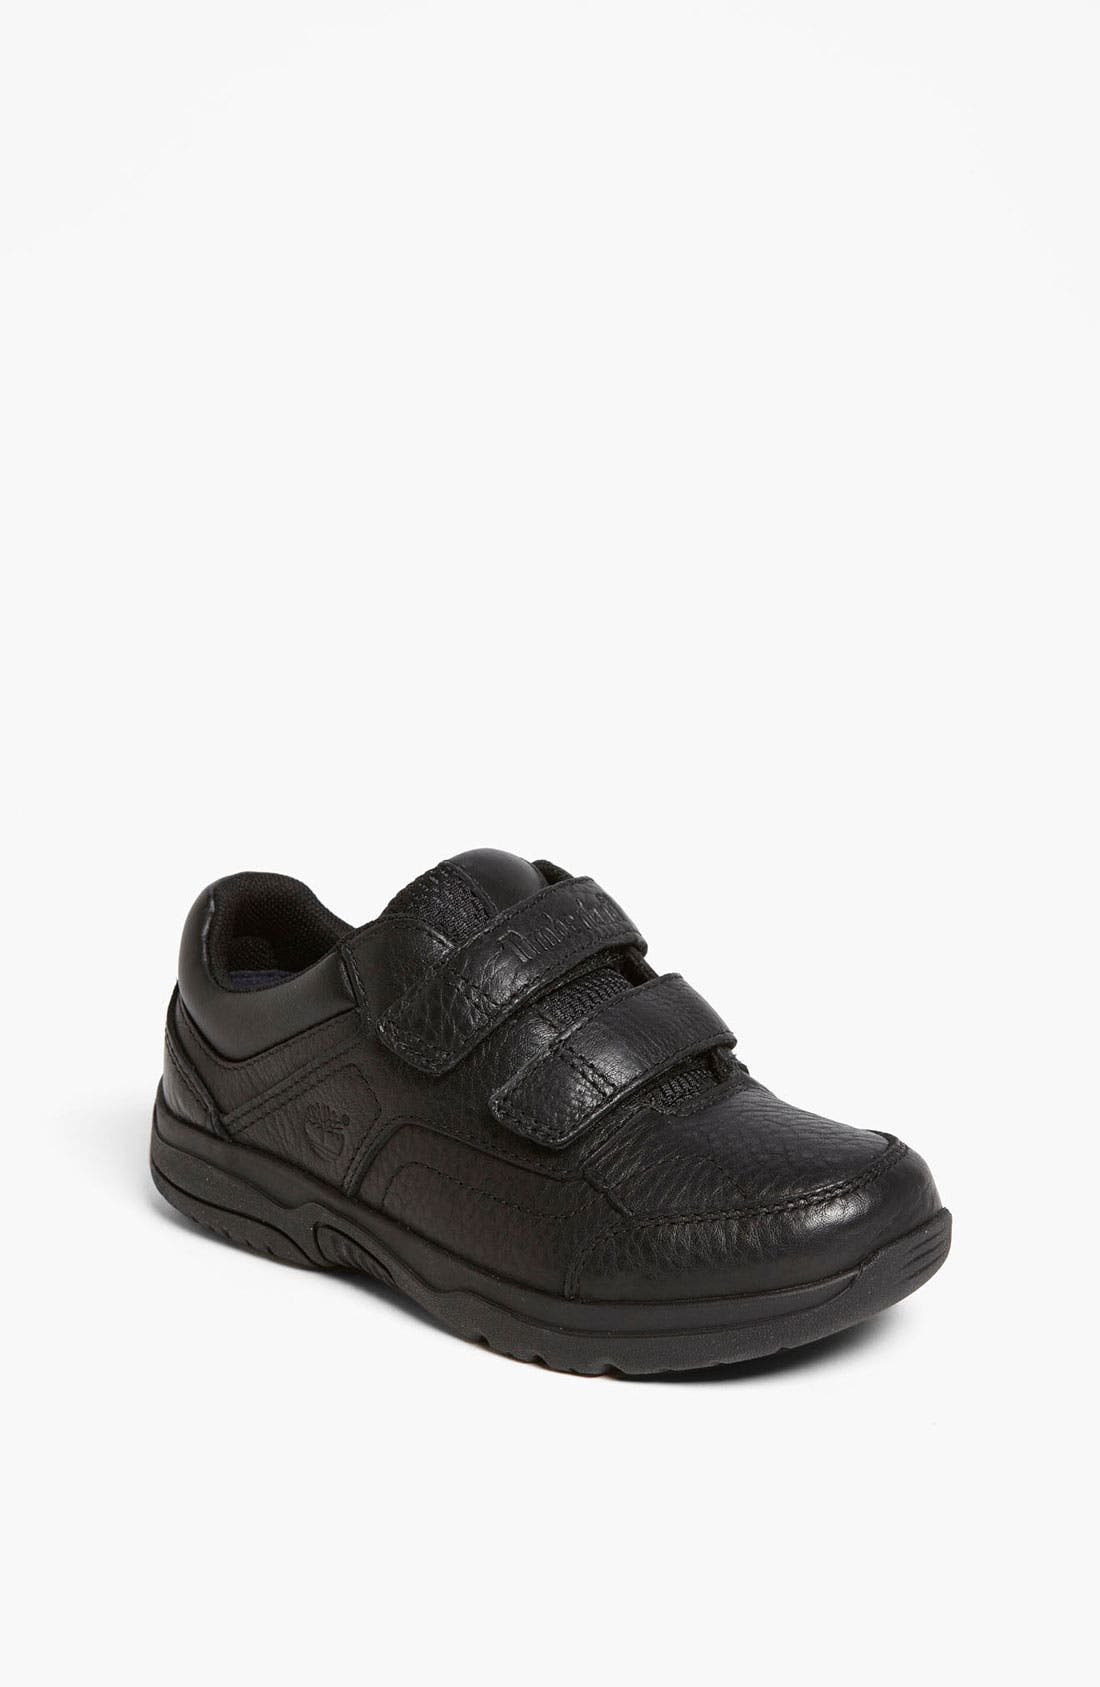 Main Image - Timberland Earthkeepers® 'Park Street' Dress Shoe (Toddler, Little Kid & Big Kid)